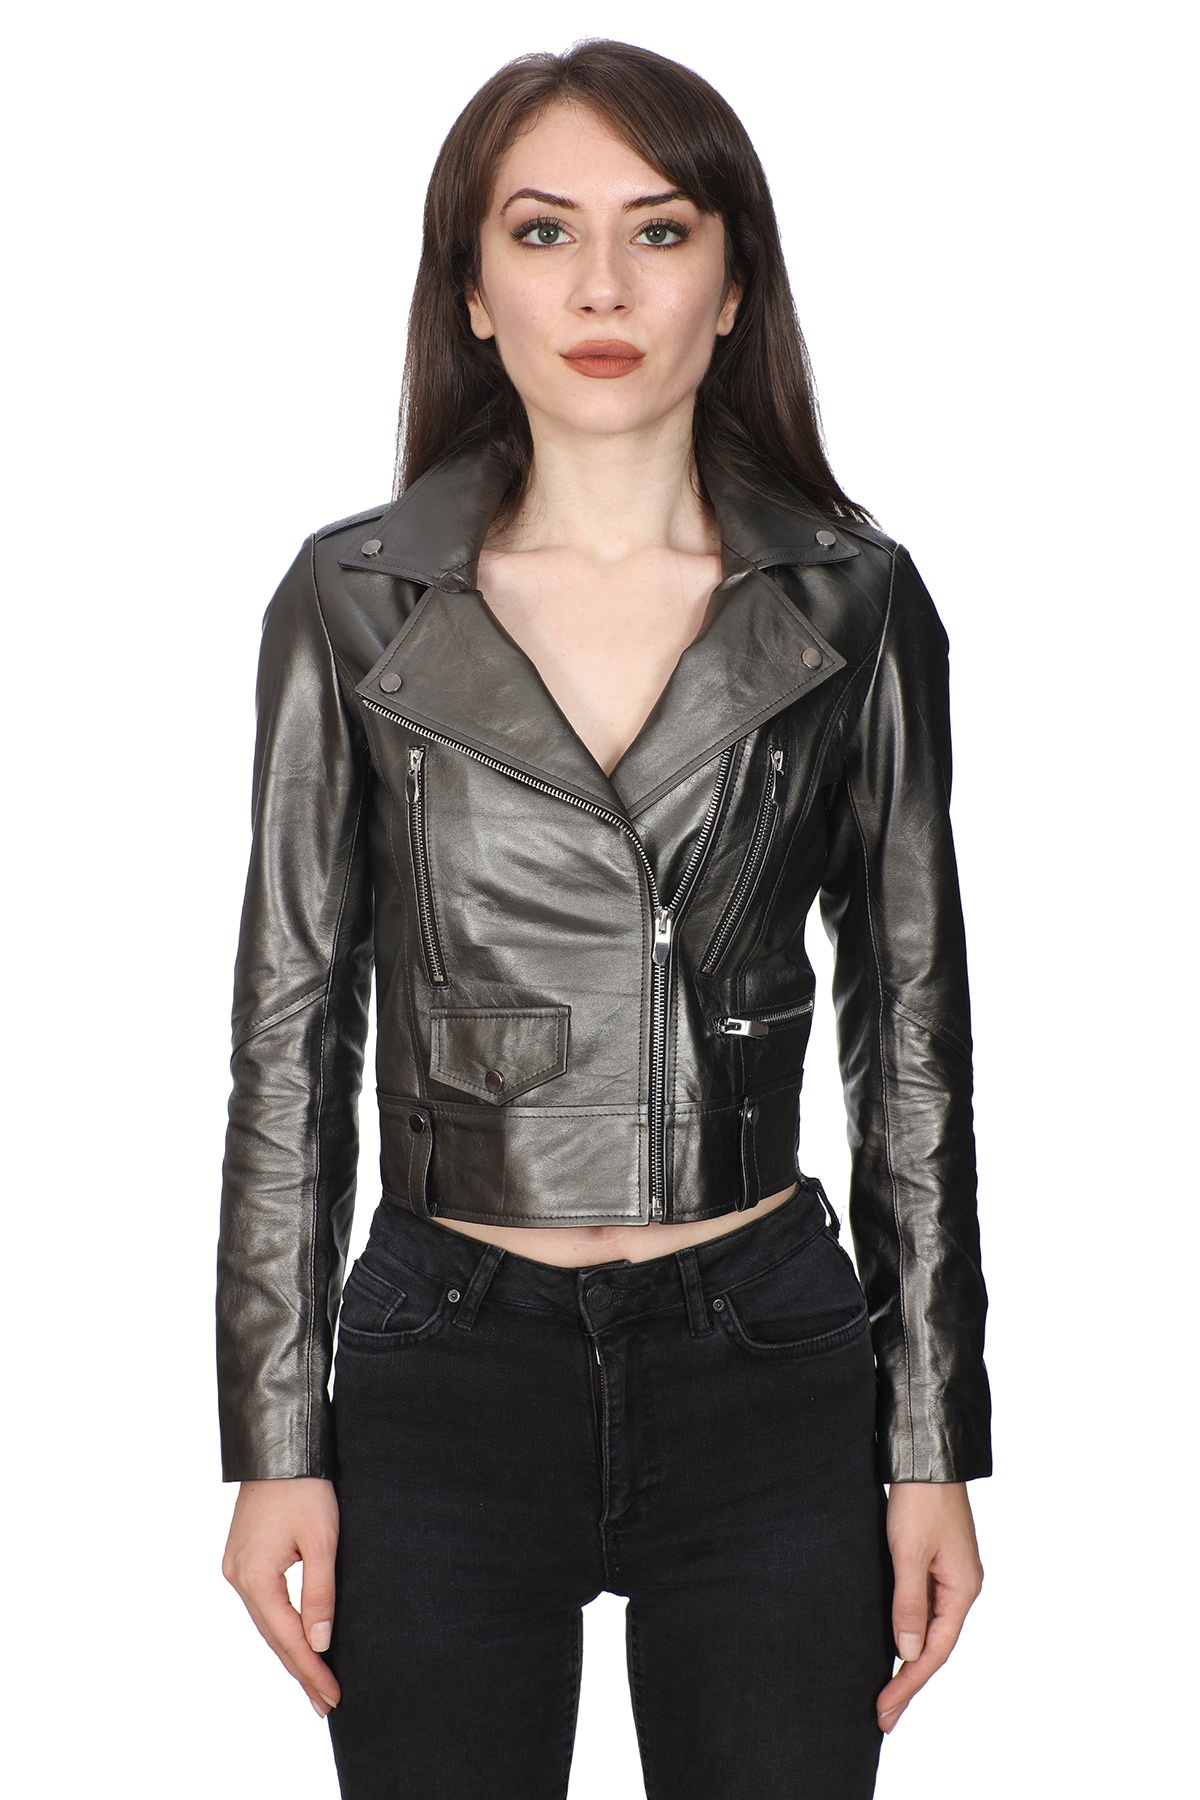 Leather Collection Jackets